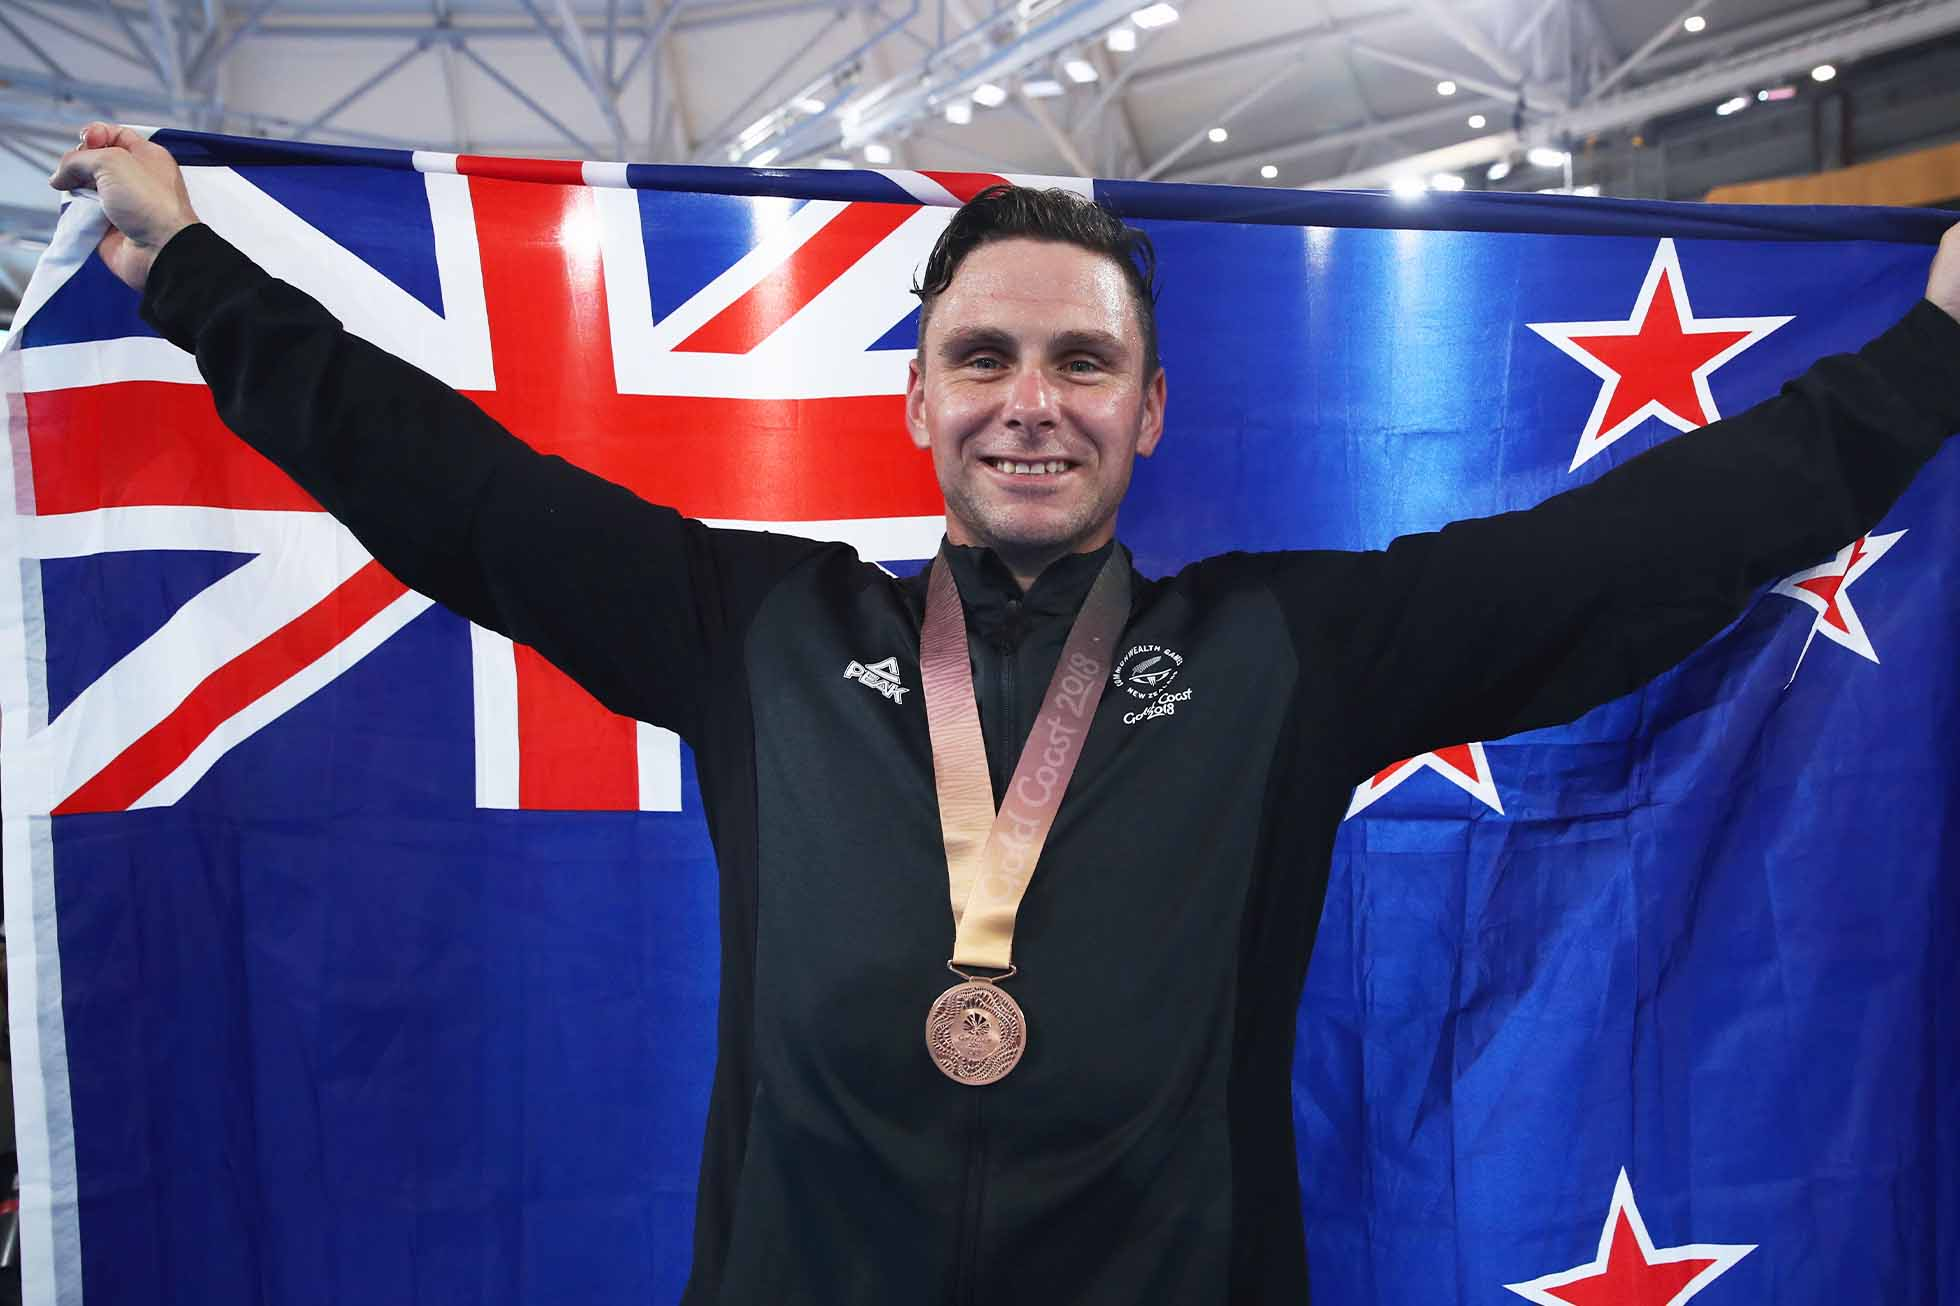 BRISBANE, AUSTRALIA - APRIL 06: Bronze medalist Edward Dawkins of New Zealand celebrates during the medal ceremony for the Men's Keirin Finals on day two of the Gold Coast 2018 Commonwealth Games at Anna Meares Velodrome on April 6, 2018 in Brisbane, Australia. (Photo by Scott Barbour/Getty Images)